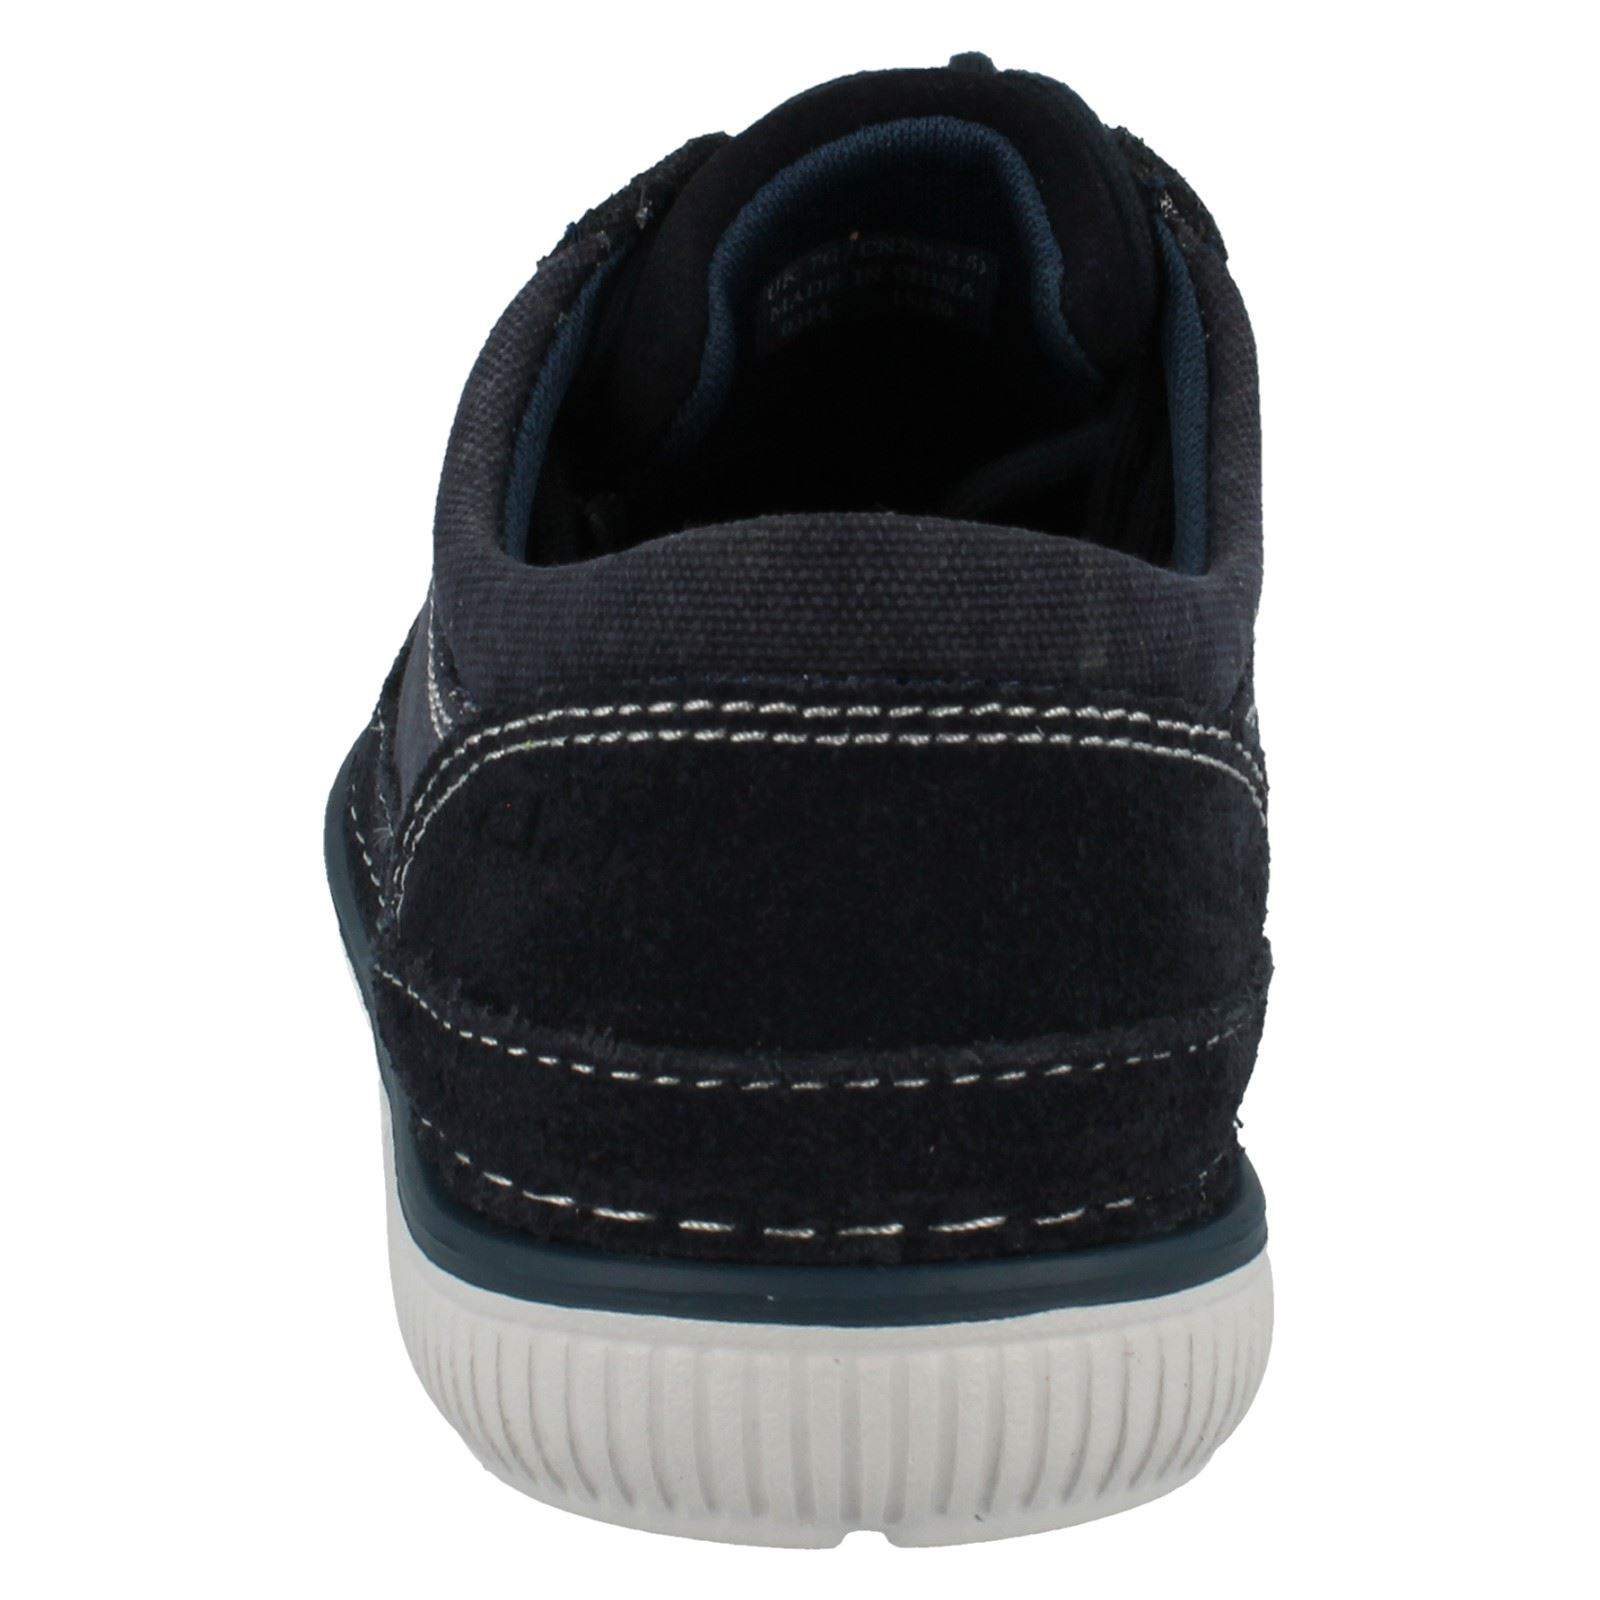 Men's Clarks Canvas The Lace Up Sports Schuhes The Canvas Style - Sulley Ollie 2b71bf